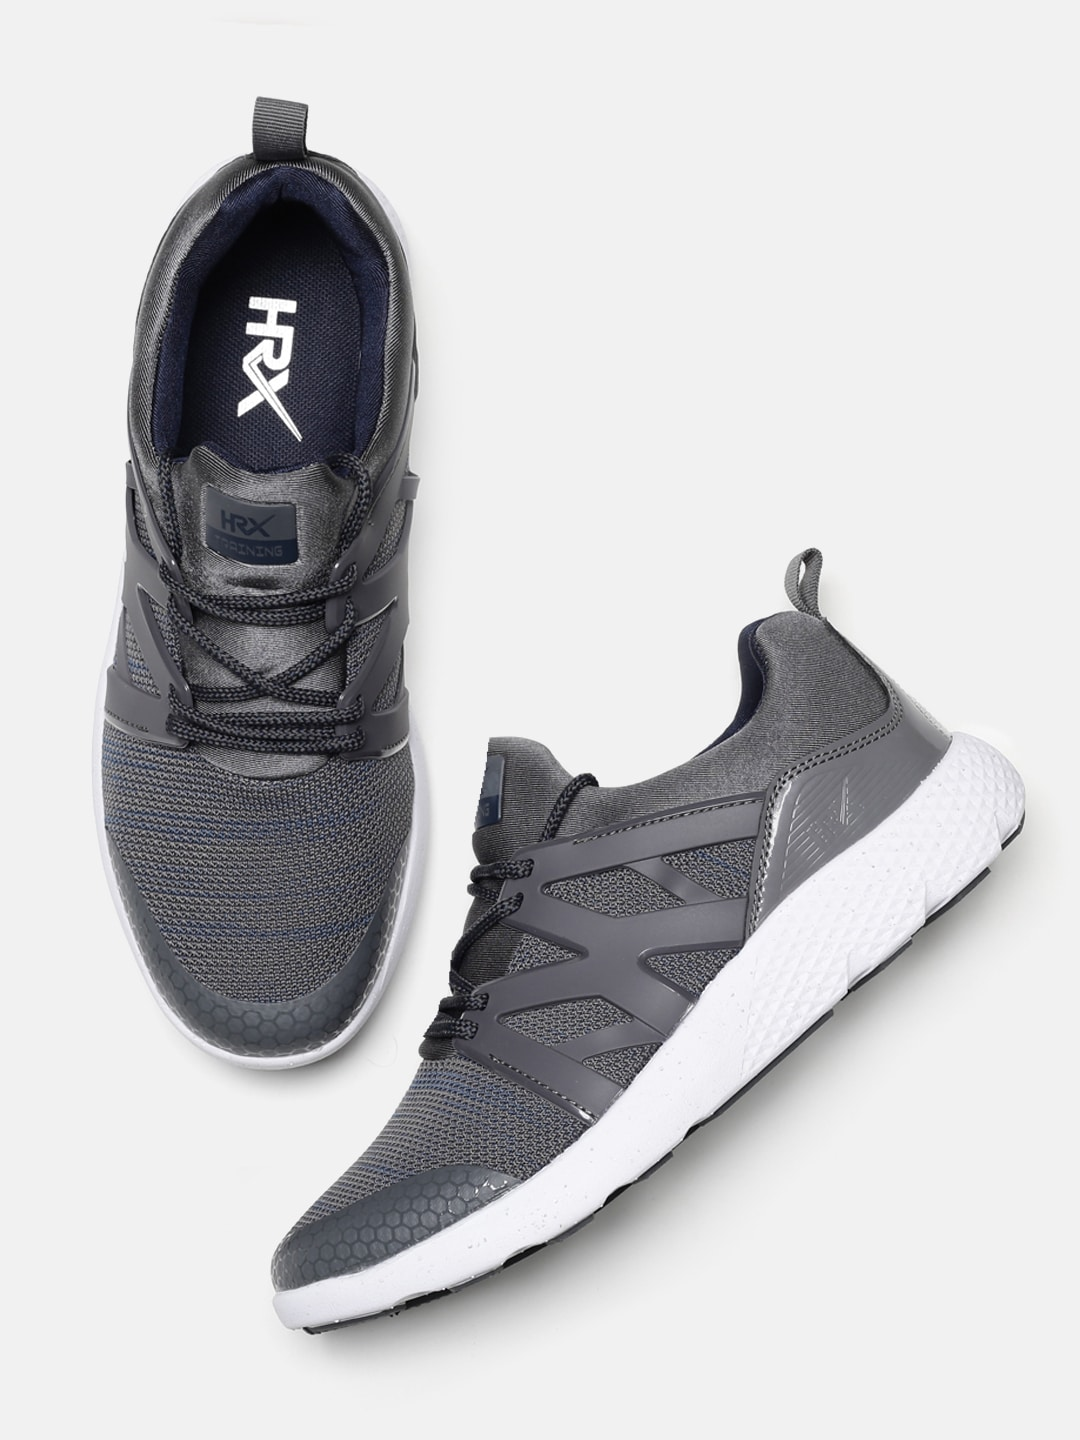 Hrx Shoes for Men - Buy Hrx Shoes Online in India  51255ec15